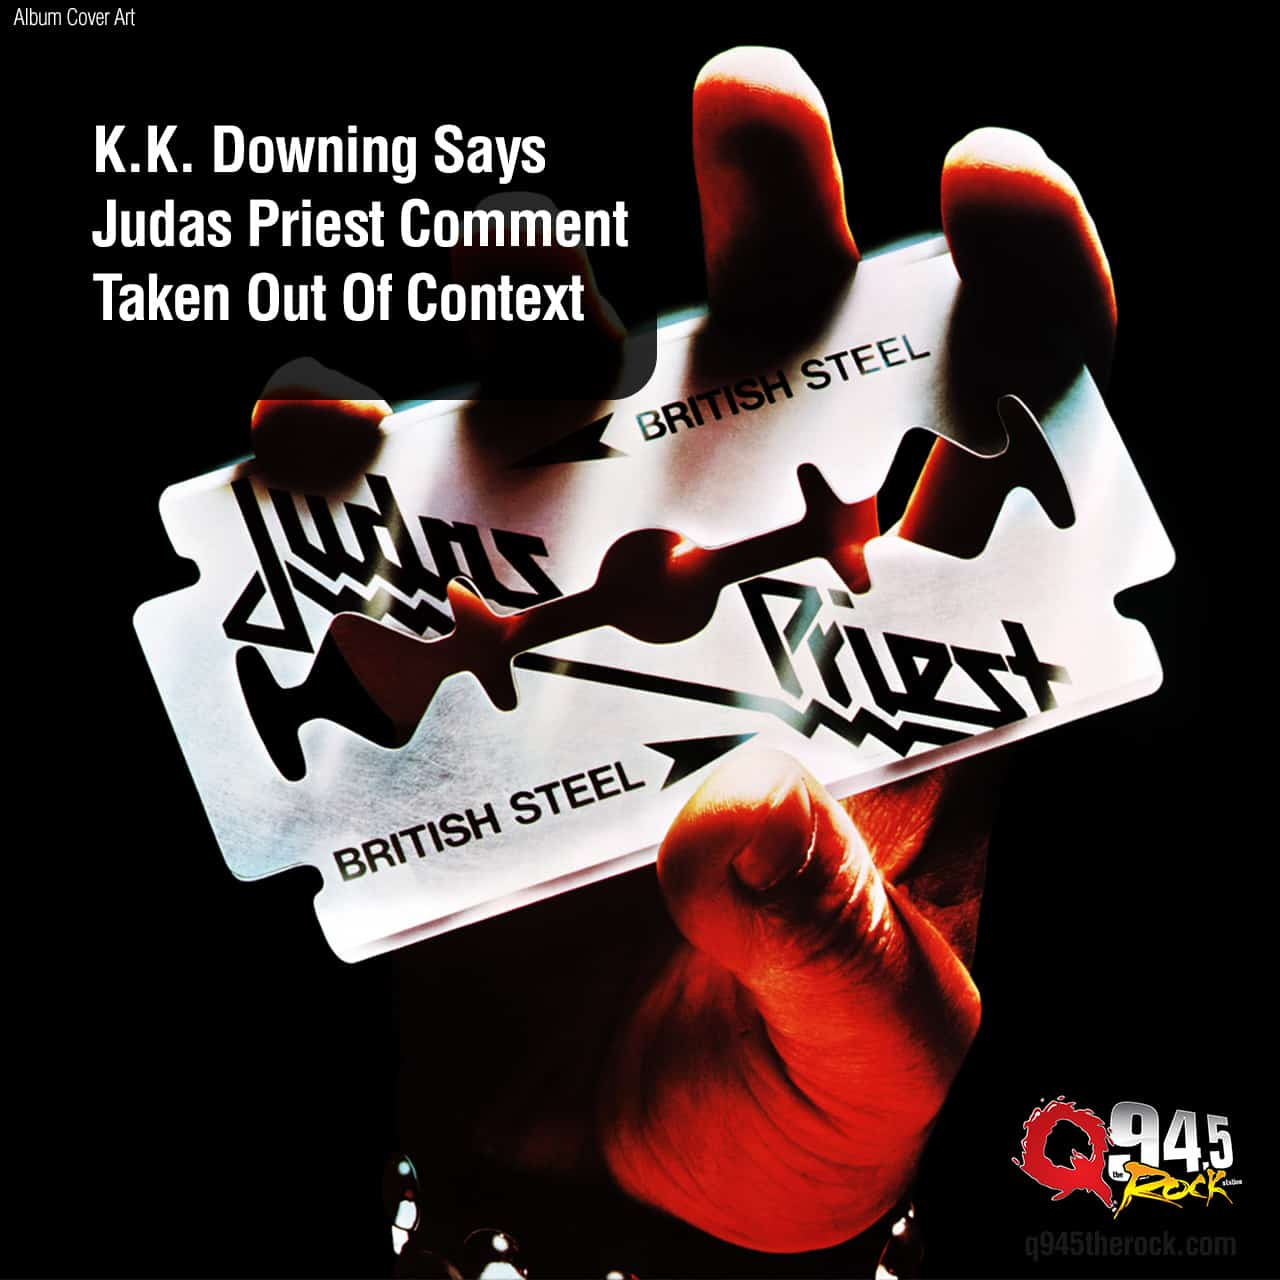 K.K. Downing Says Judas Priest Comment Taken Out Of Context